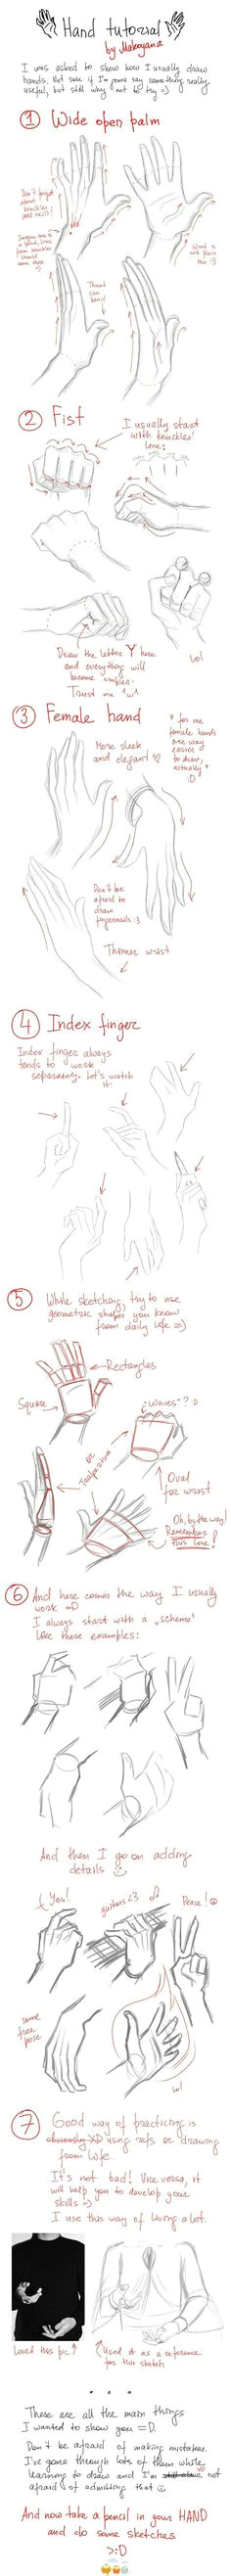 inspiring drawing lessons drawing tips drawing hands drawing stuff drawing pictures